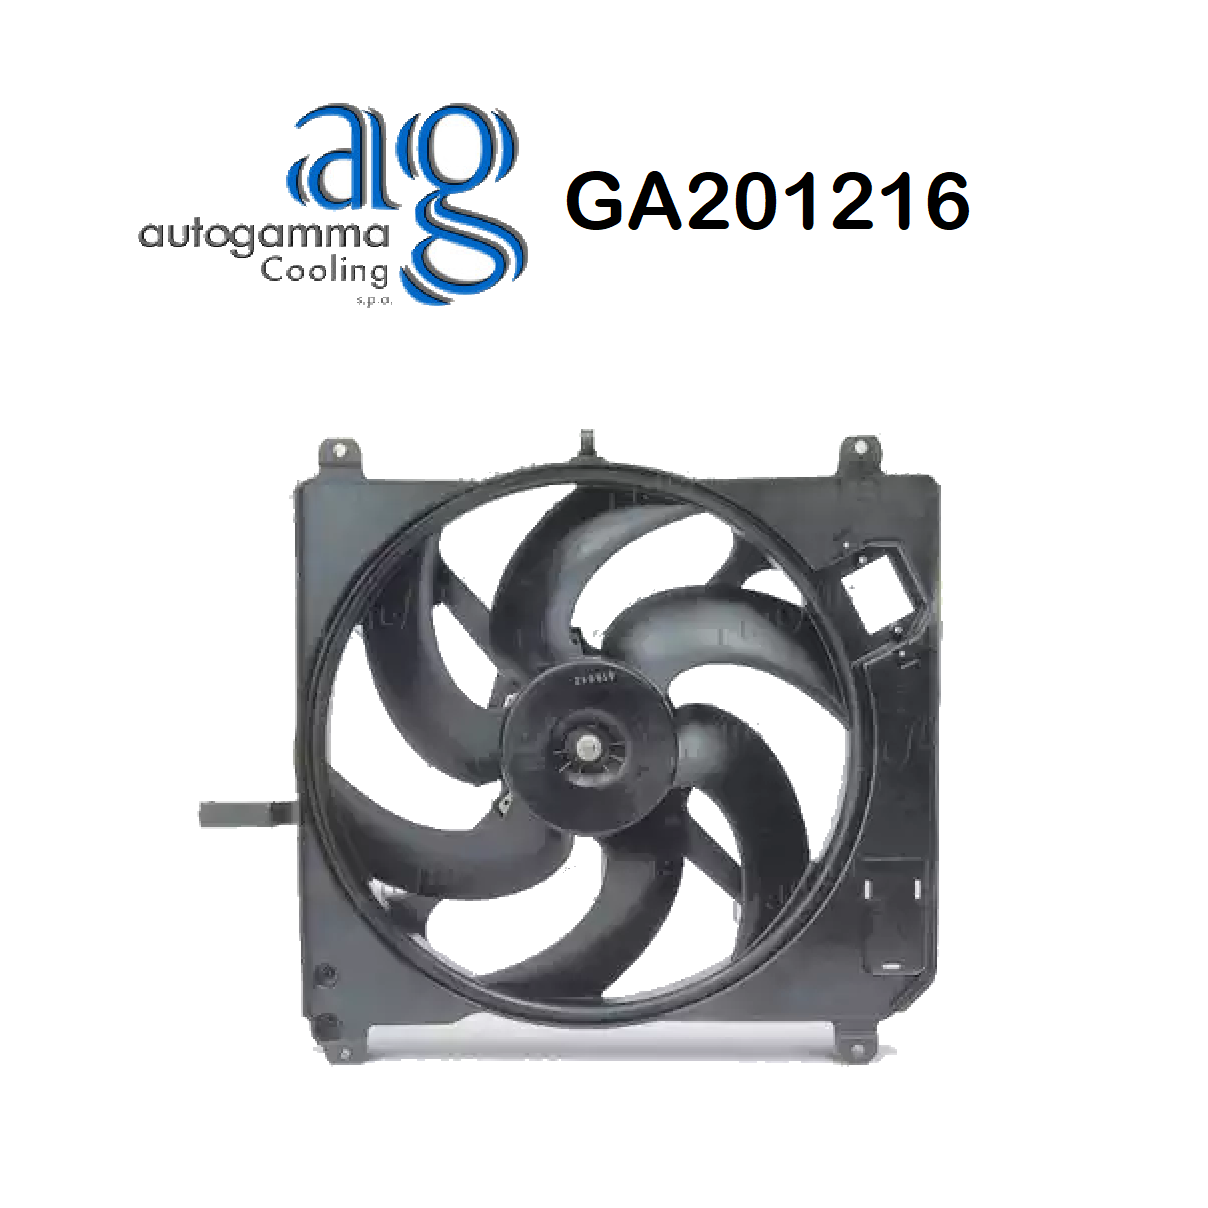 FIAT BRAVA - BRAVO ENGINE COOLING FAN - BRAVO - TIDE AUTOGAMMA FOR 46465005